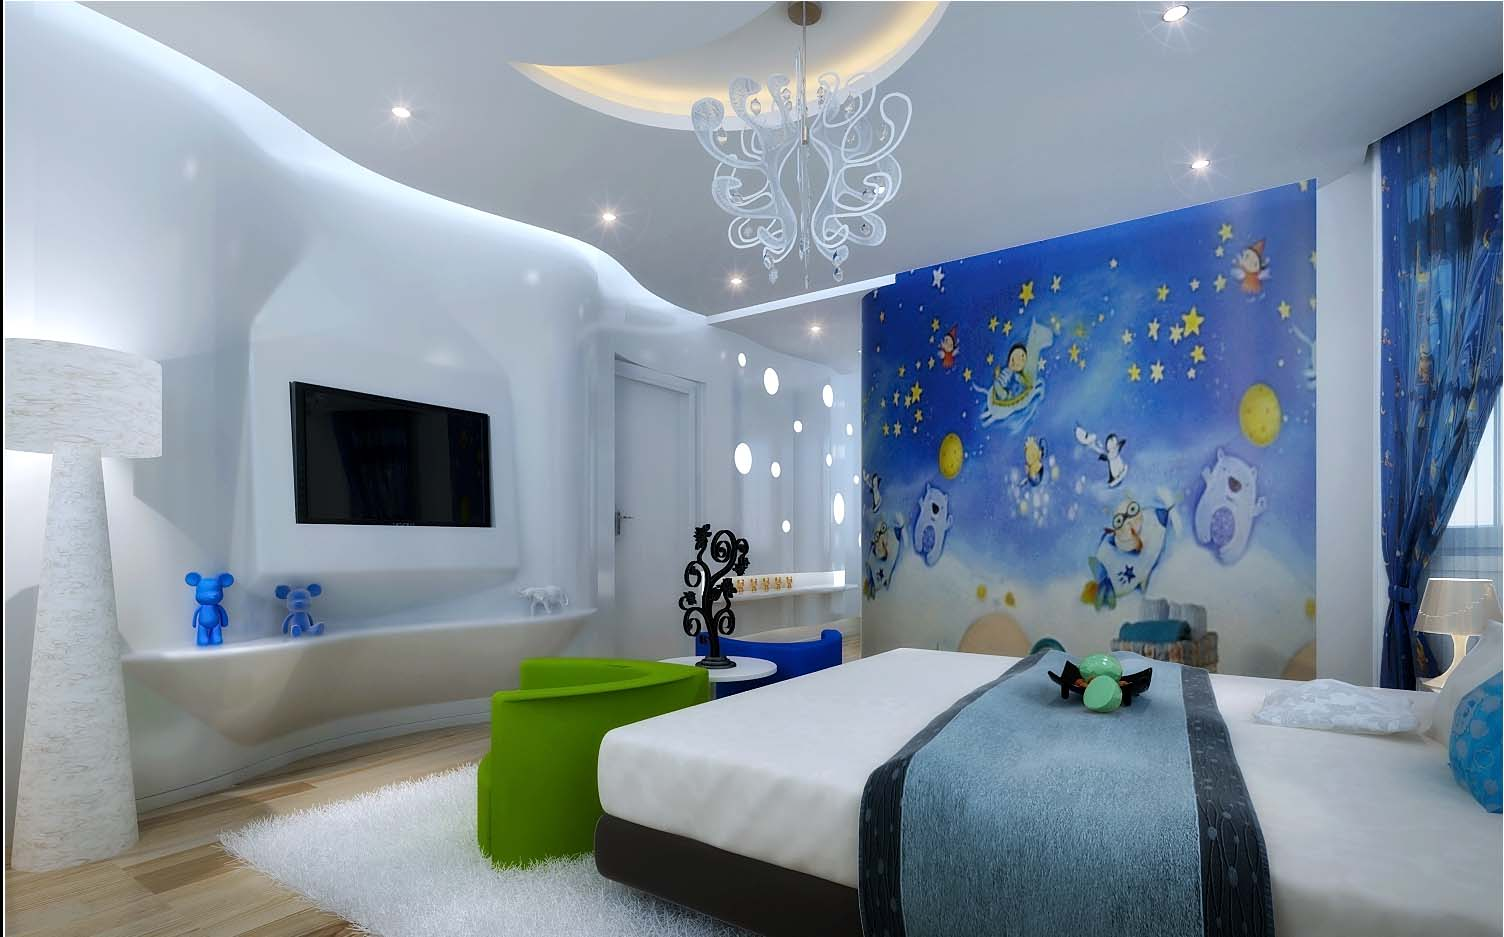 Kids Bedroom 3d Model 3d model kids bedroom with tv | cgtrader